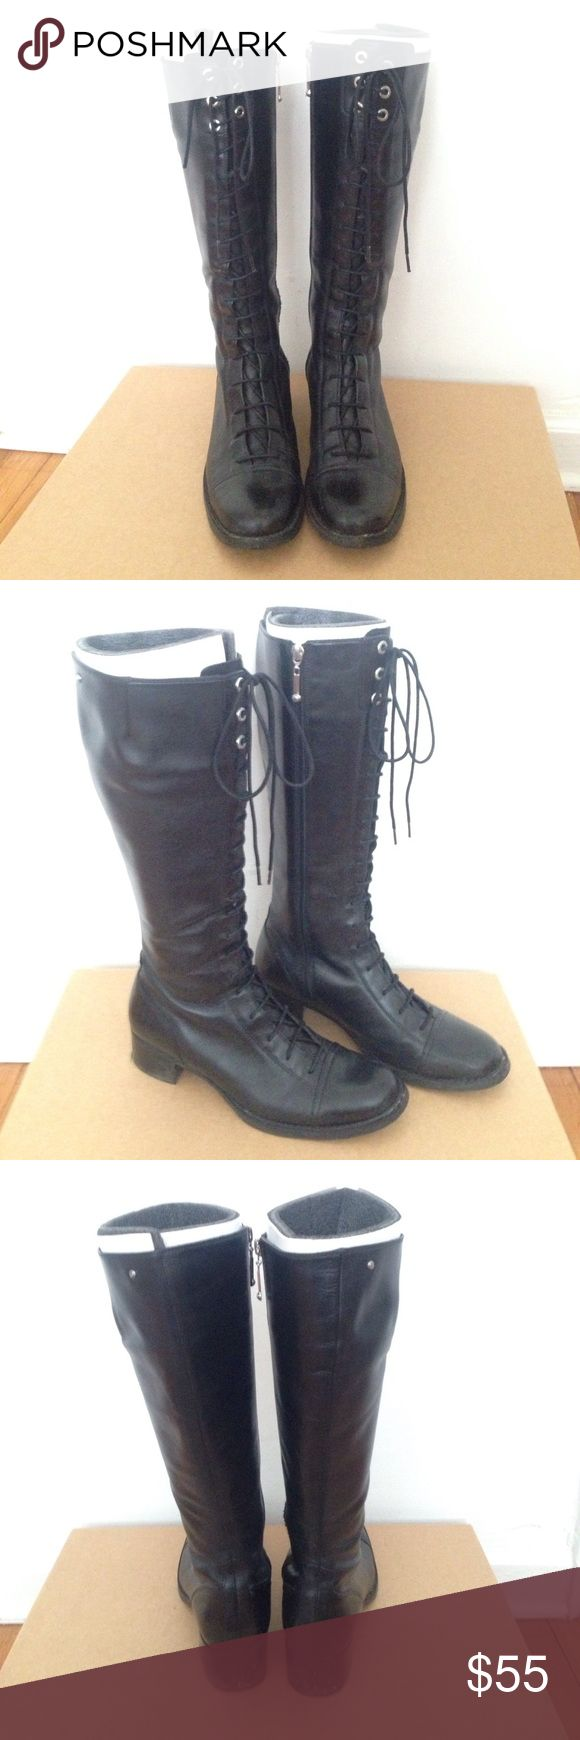 Rockport Leiden lace up knee high rocker boots Combat knee high boots in black leather. Super comfortable and beautiful leather. Barely worn (too big for my 7.5-8 feet), a true size 8.5. Will ship in original shoe box. Anthropologie Shoes Combat & Moto Boots